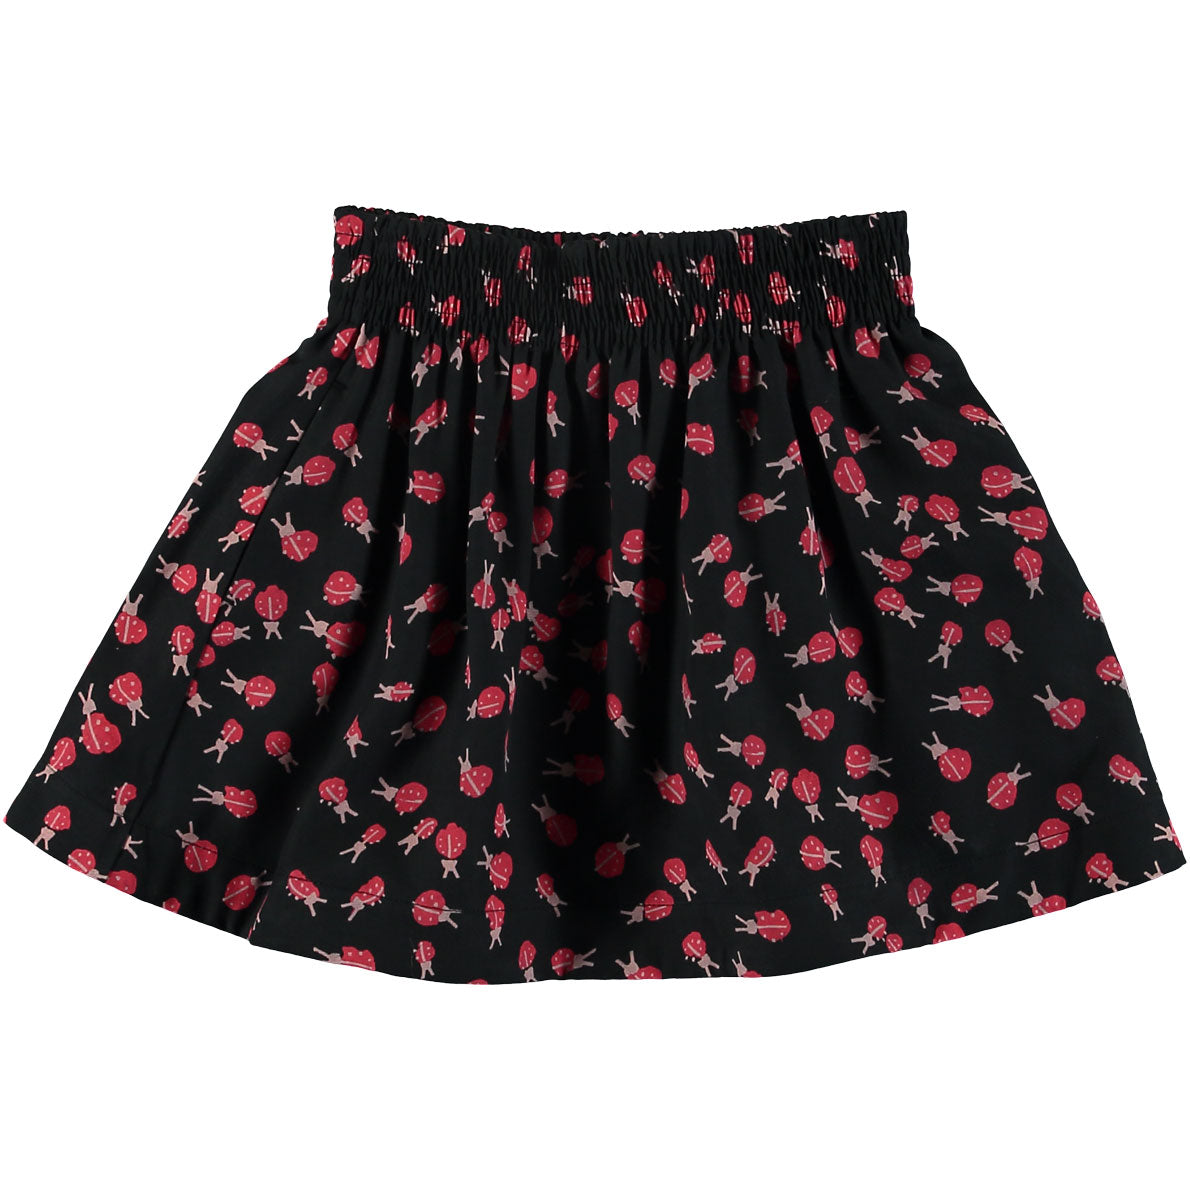 fcc15b5a8 Stella McCartney Black Ladybug Print Nat Skirt | Ladida